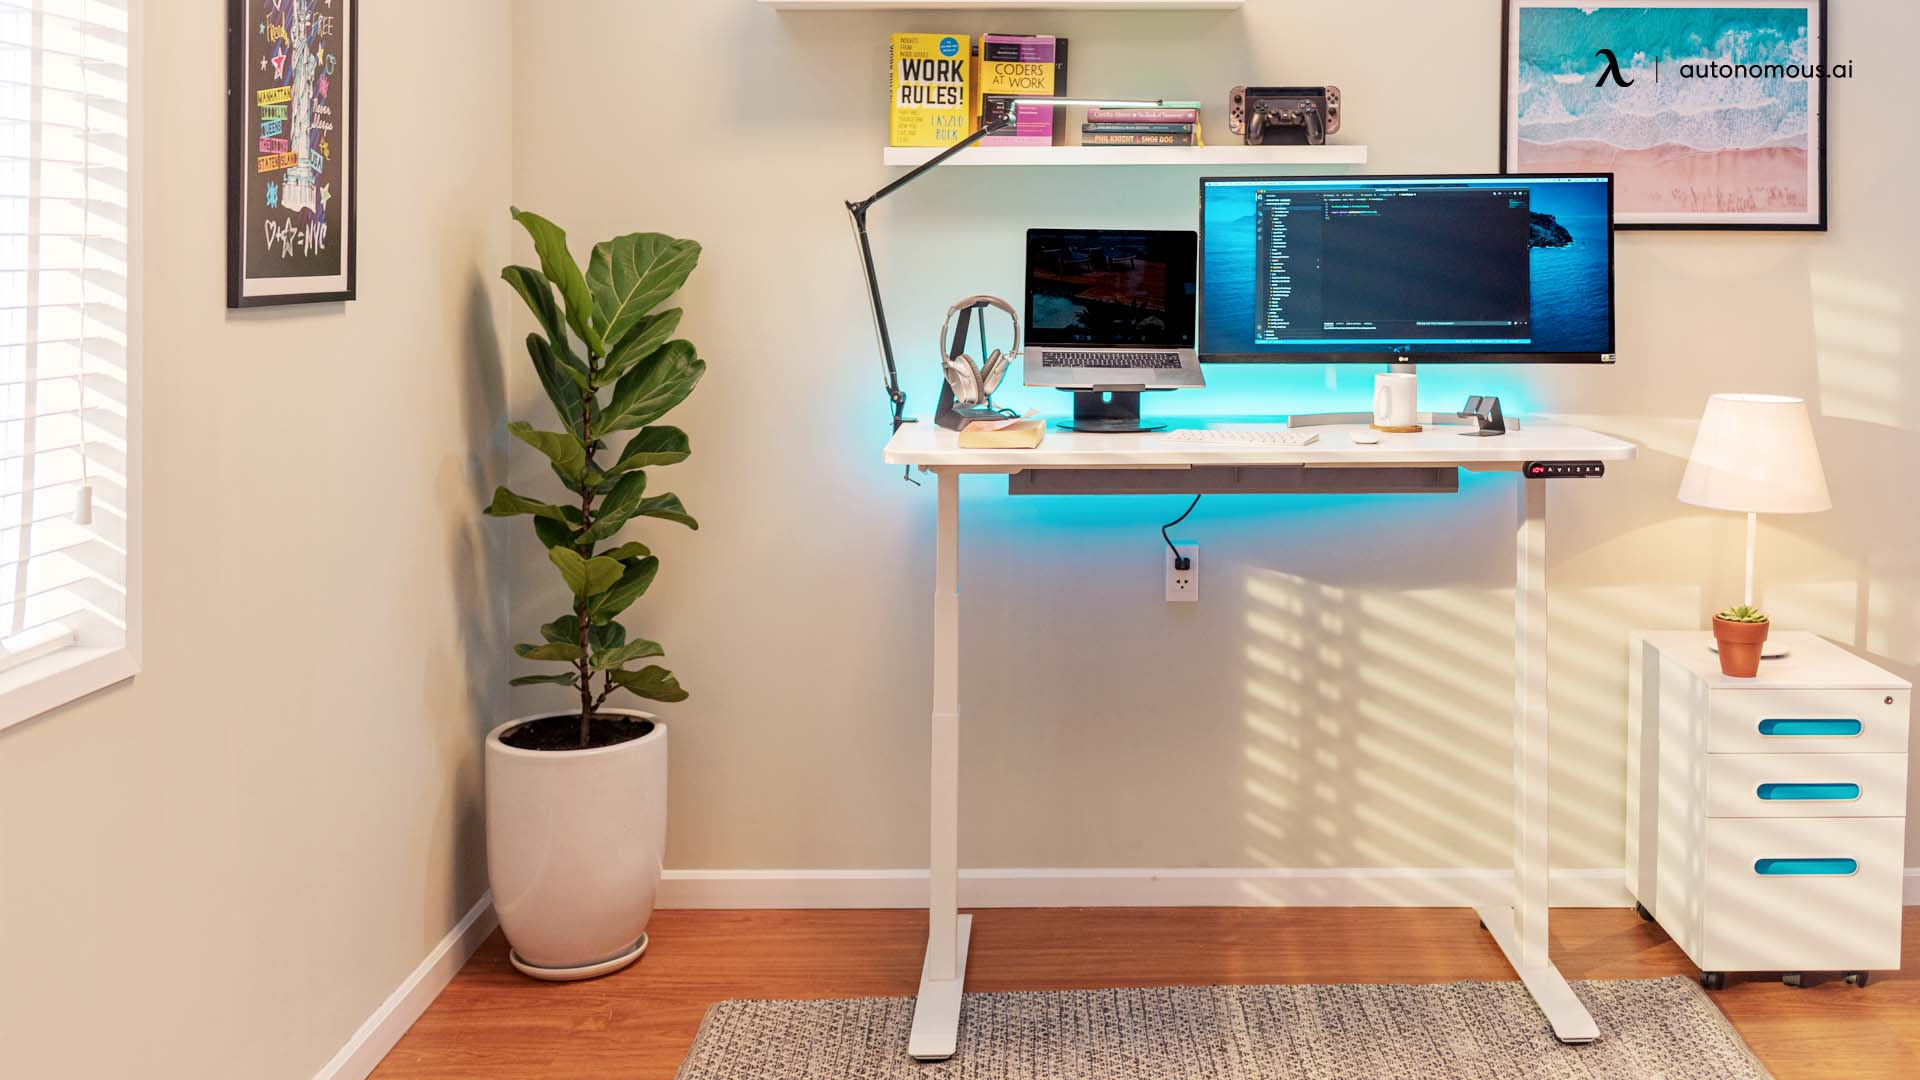 Qualities that Your Modern Home Office Should Promote